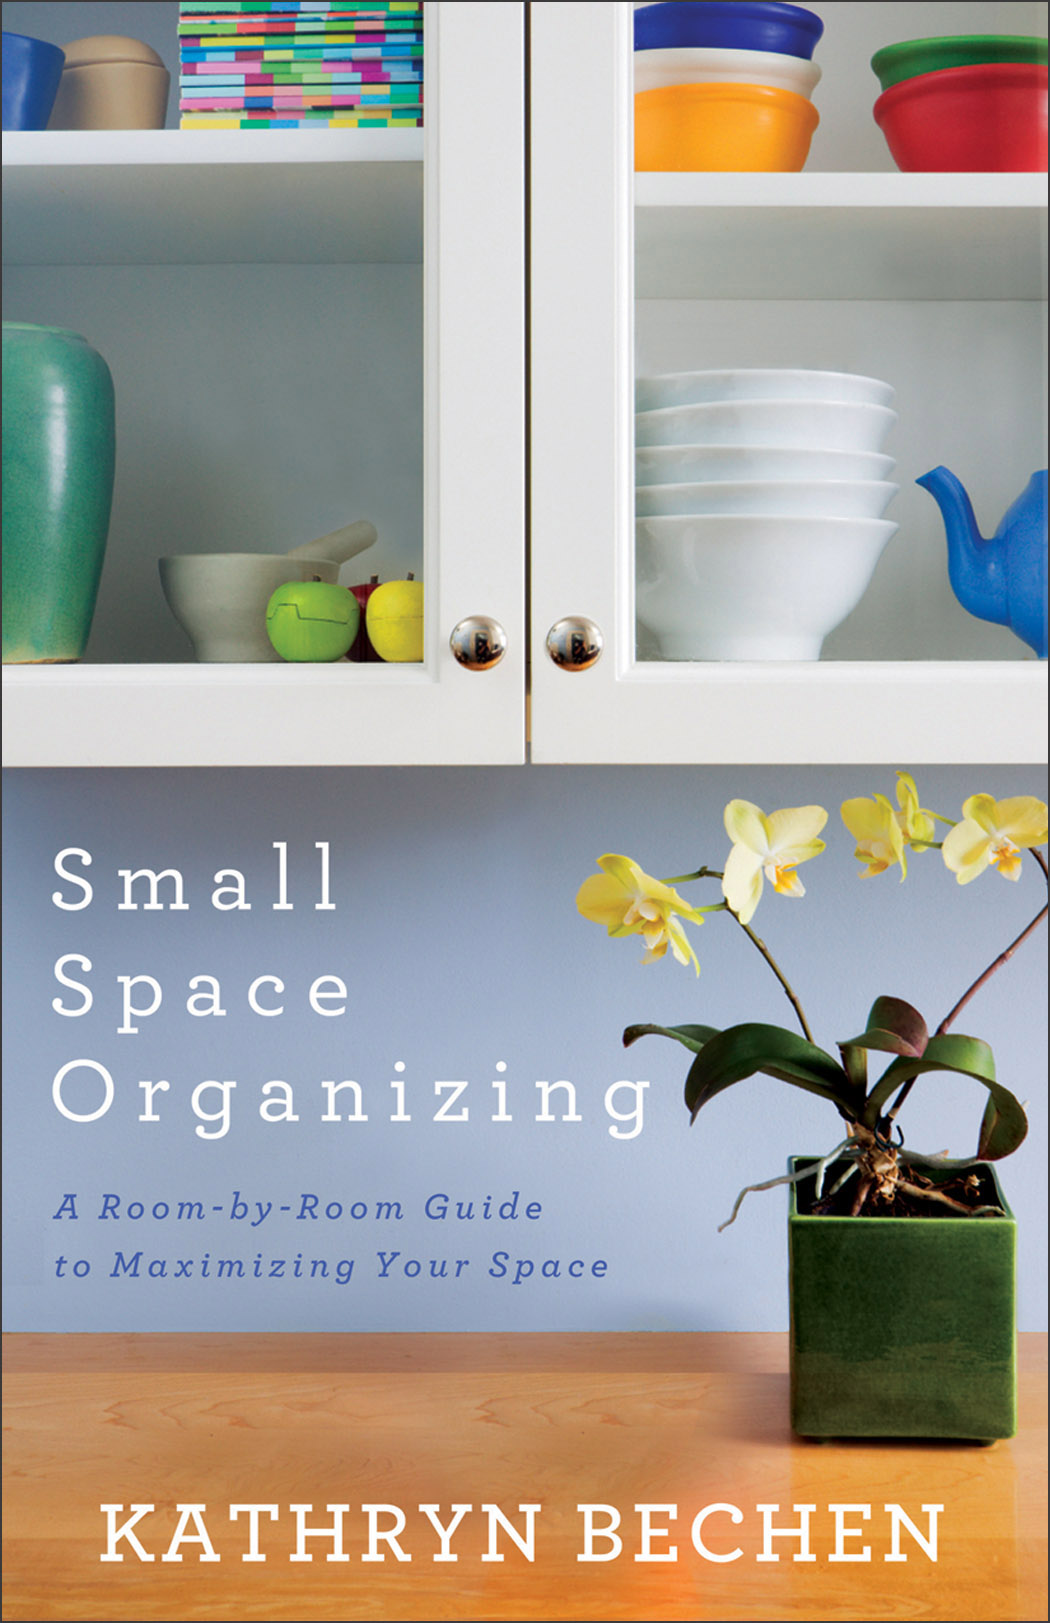 Small Space Organizing Kathryn Bechen